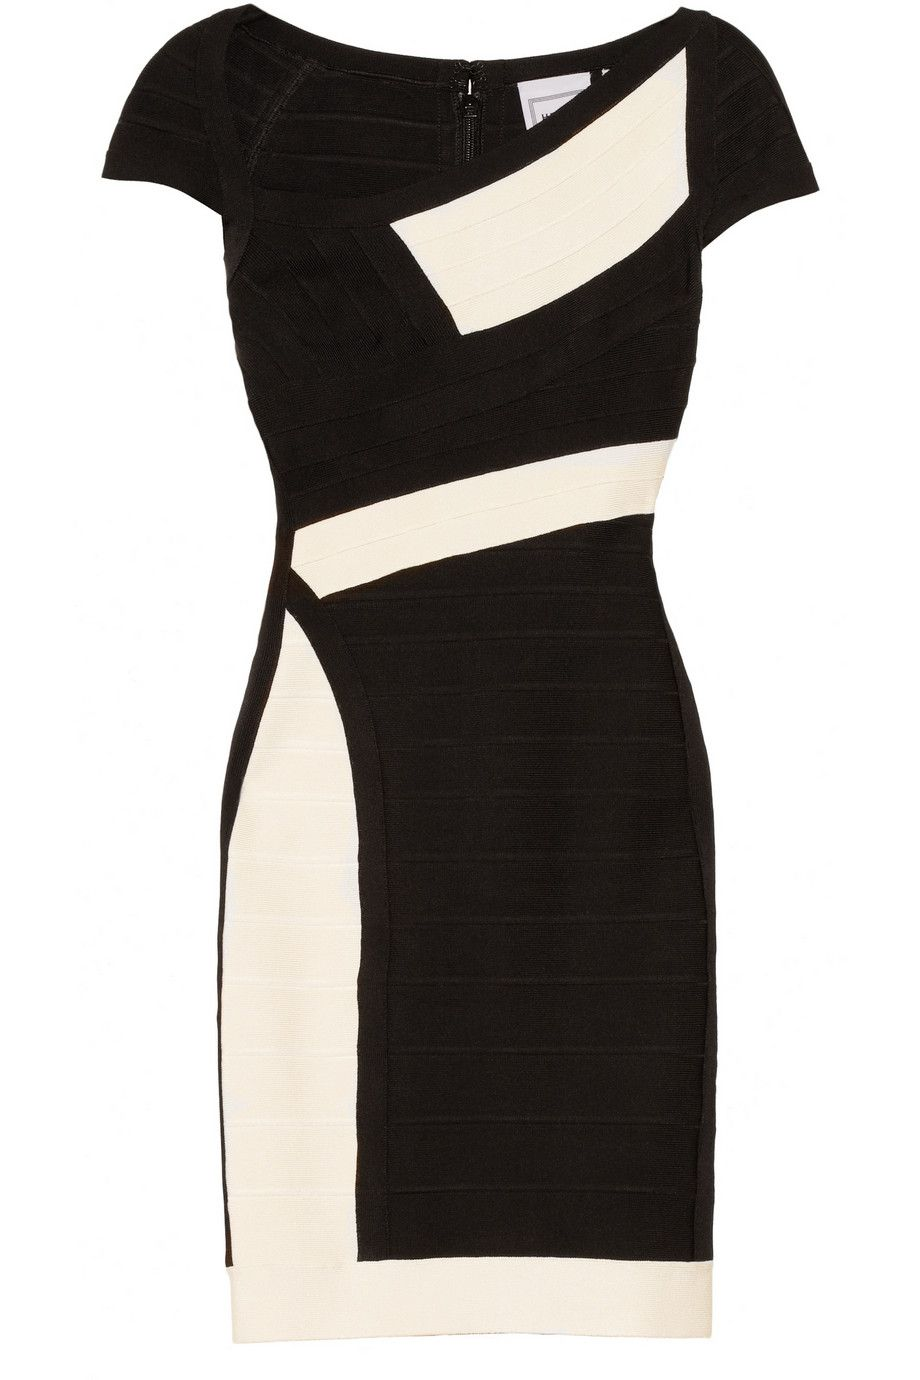 Hervé Léger Color Block Bandage Dress Net A Porter